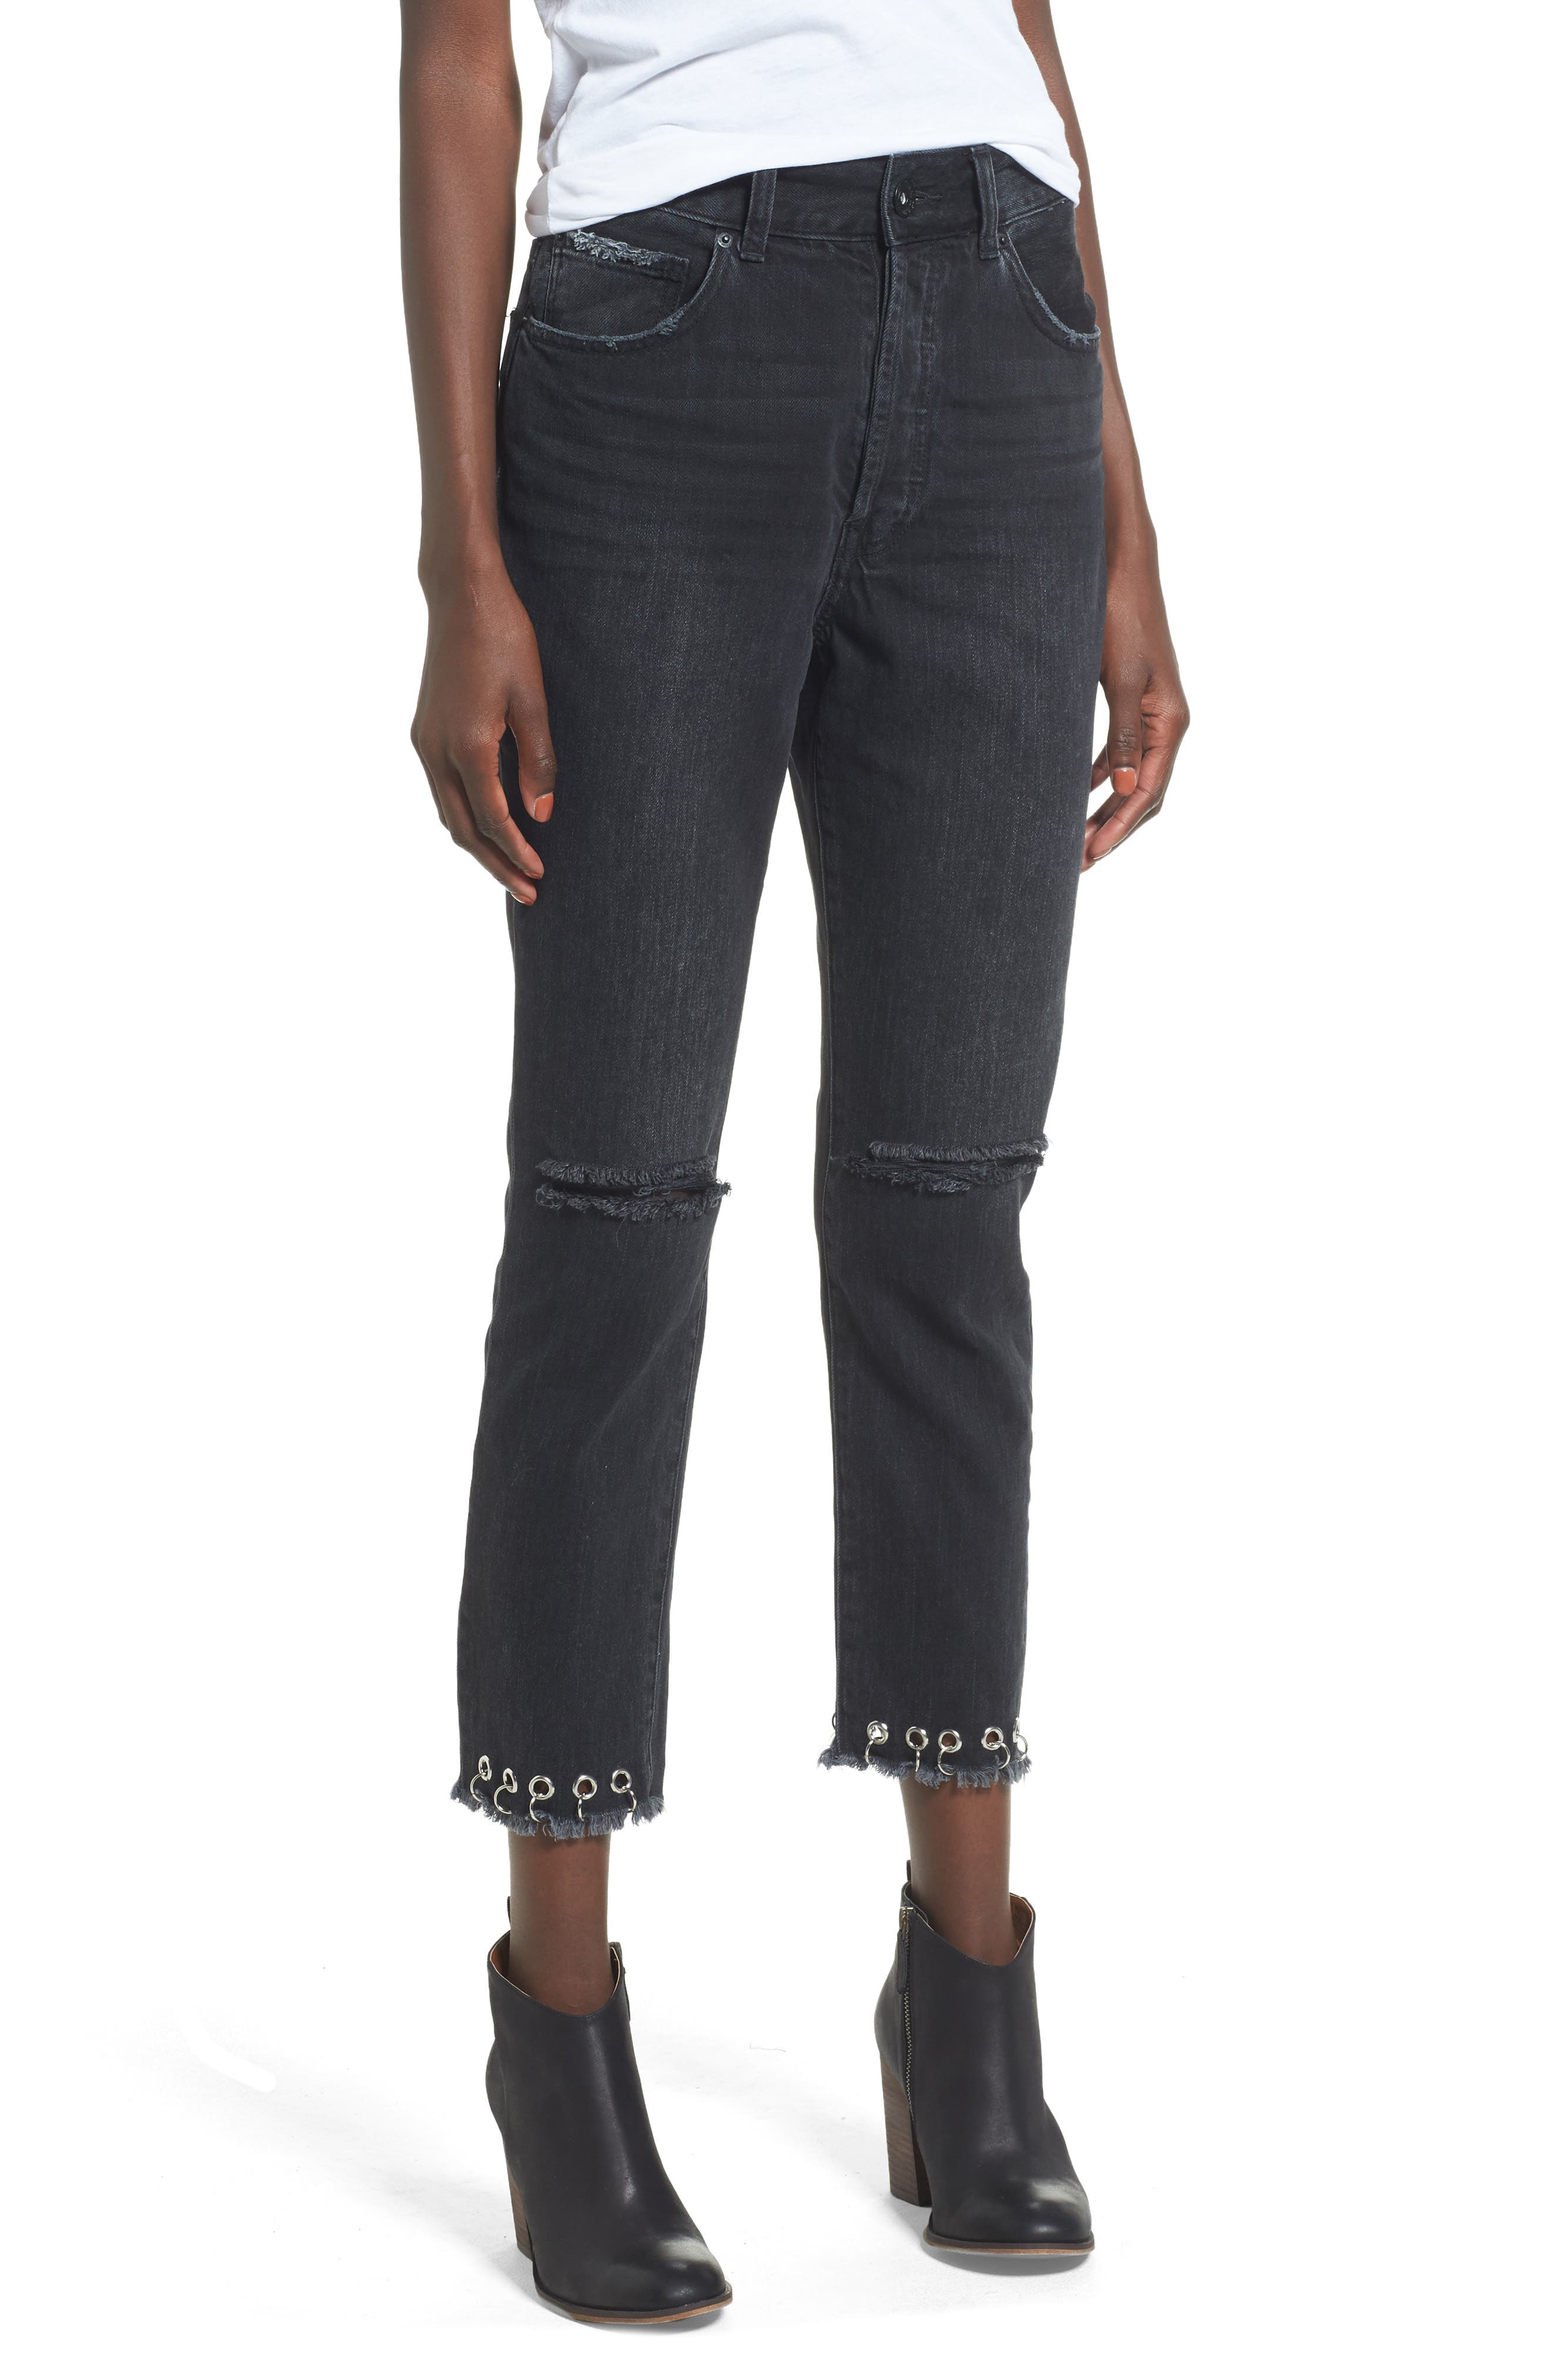 Band of Gypsies Maddy Grommet Straight Leg Jeans (Vibes West)